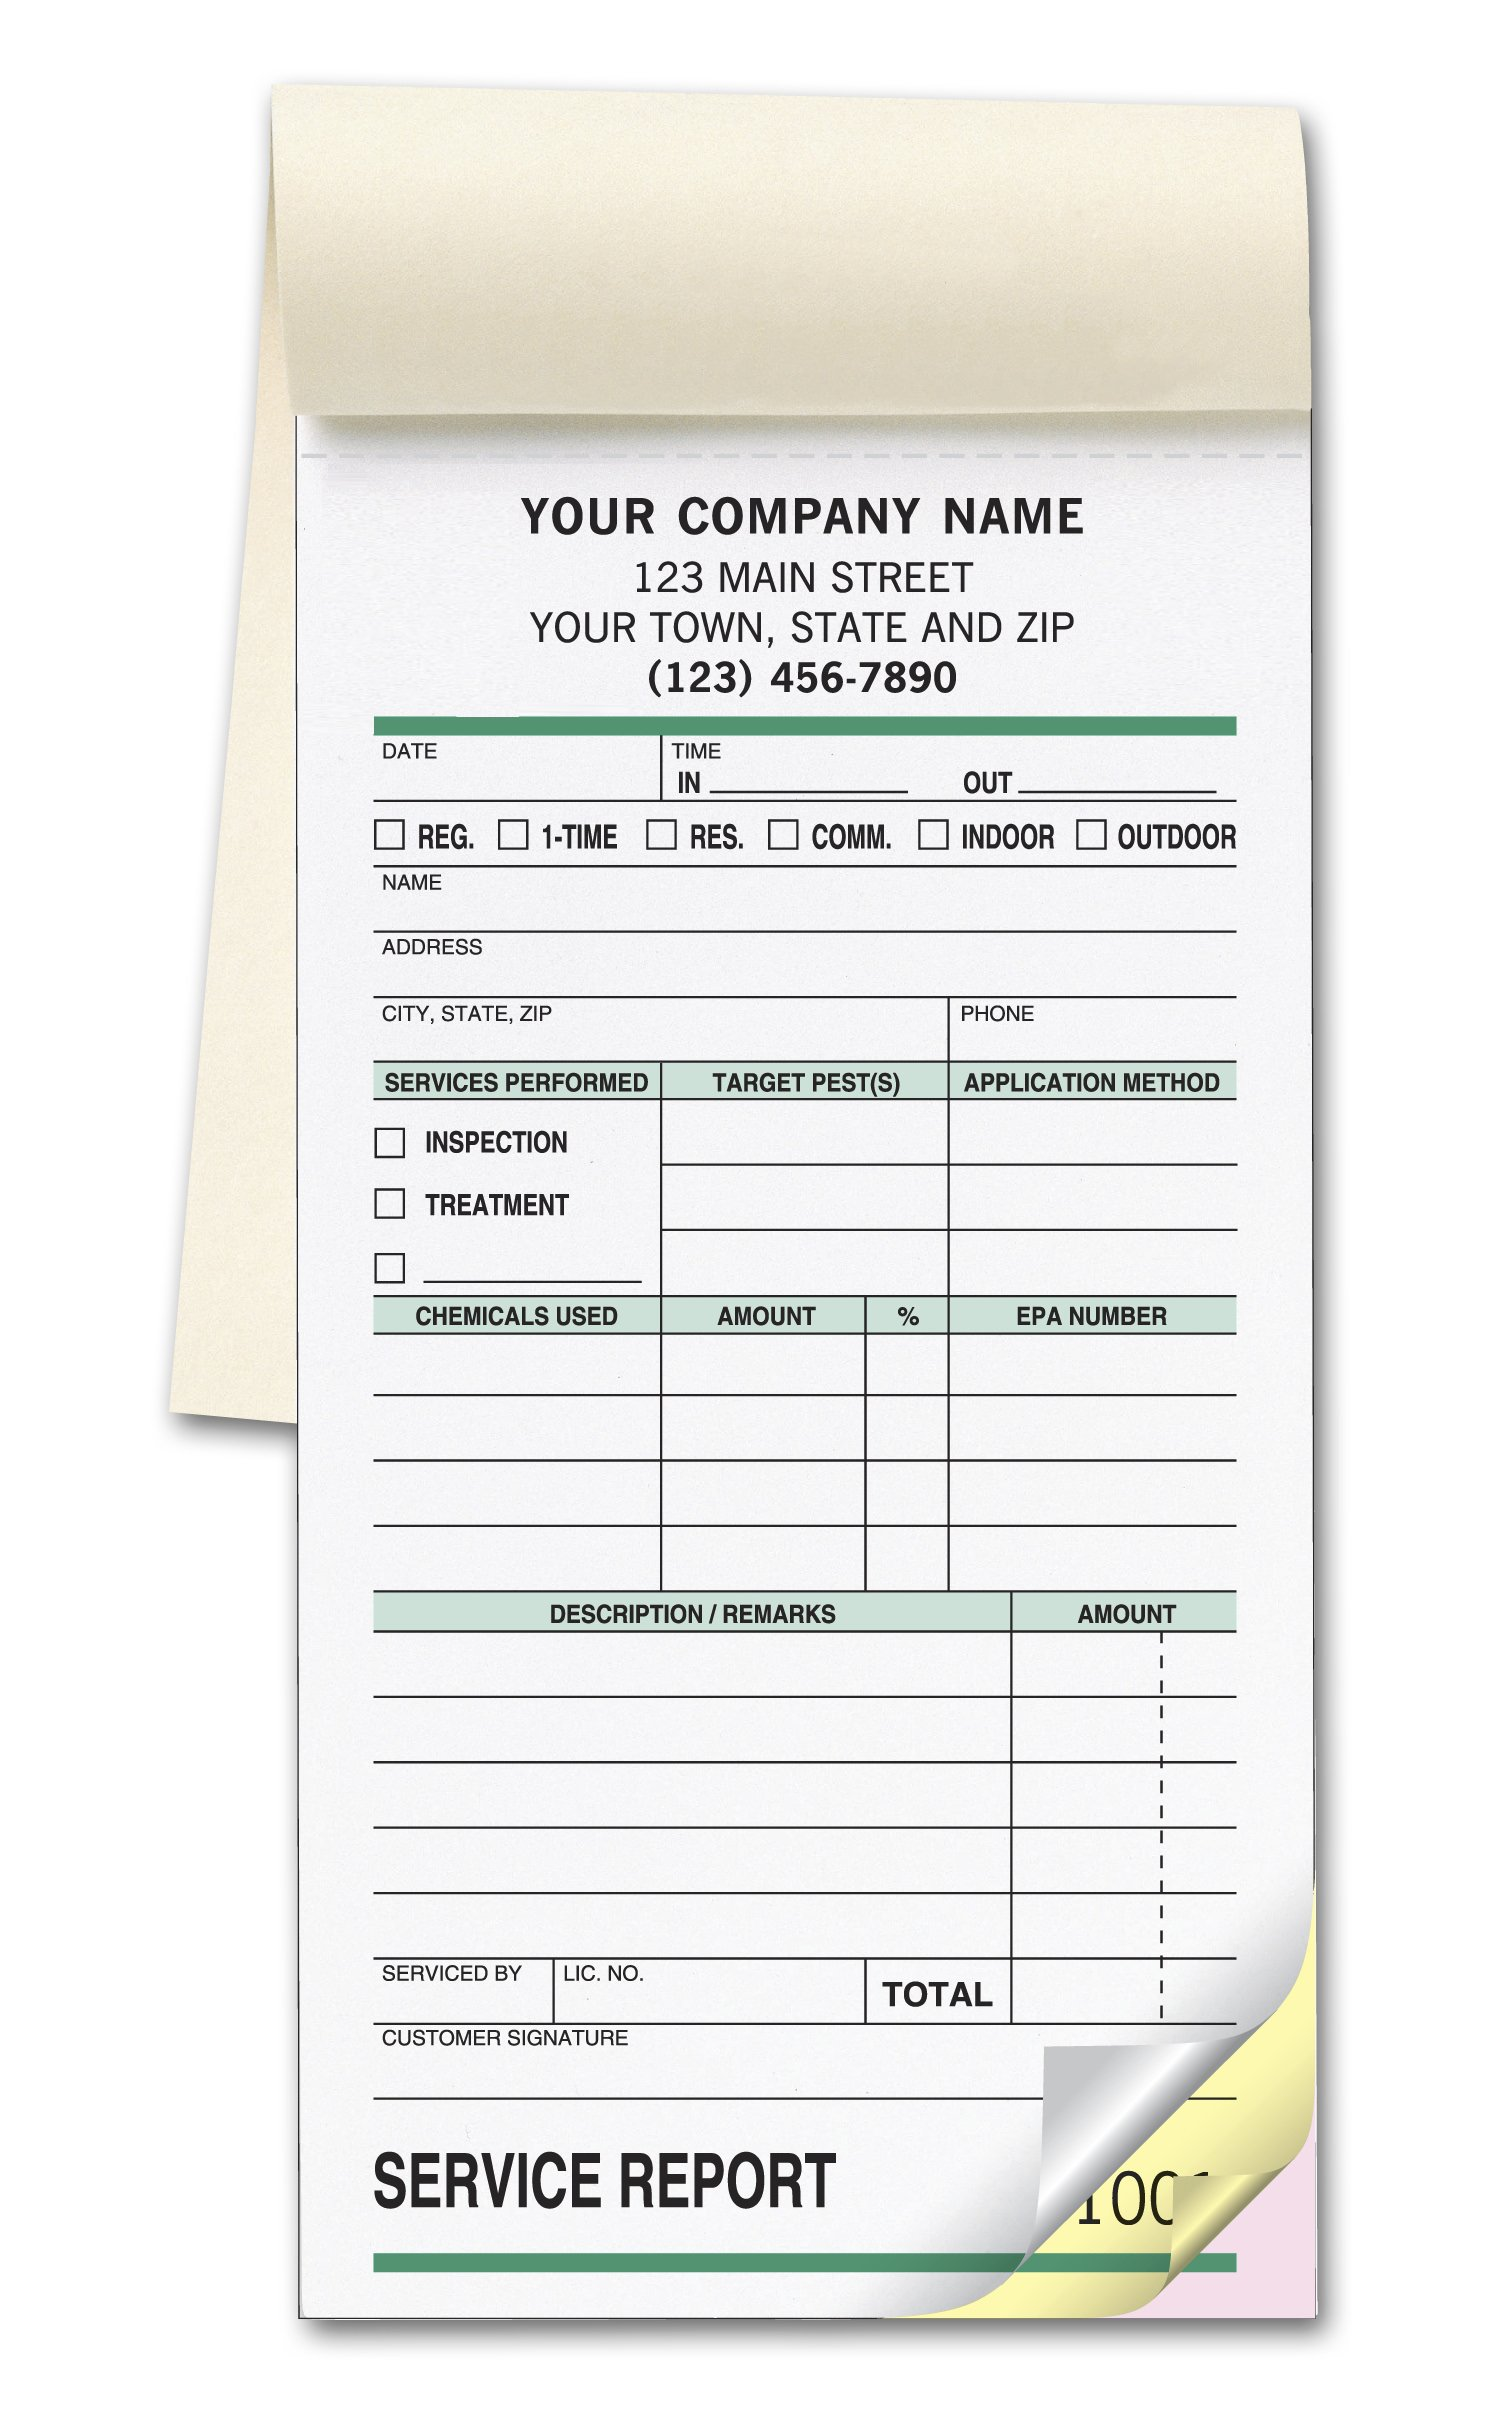 CheckSimple Pest Control Service Receipt Forms, Customized Small Service Order Form Book, 3-Part, White (500 Forms) by CheckSimple